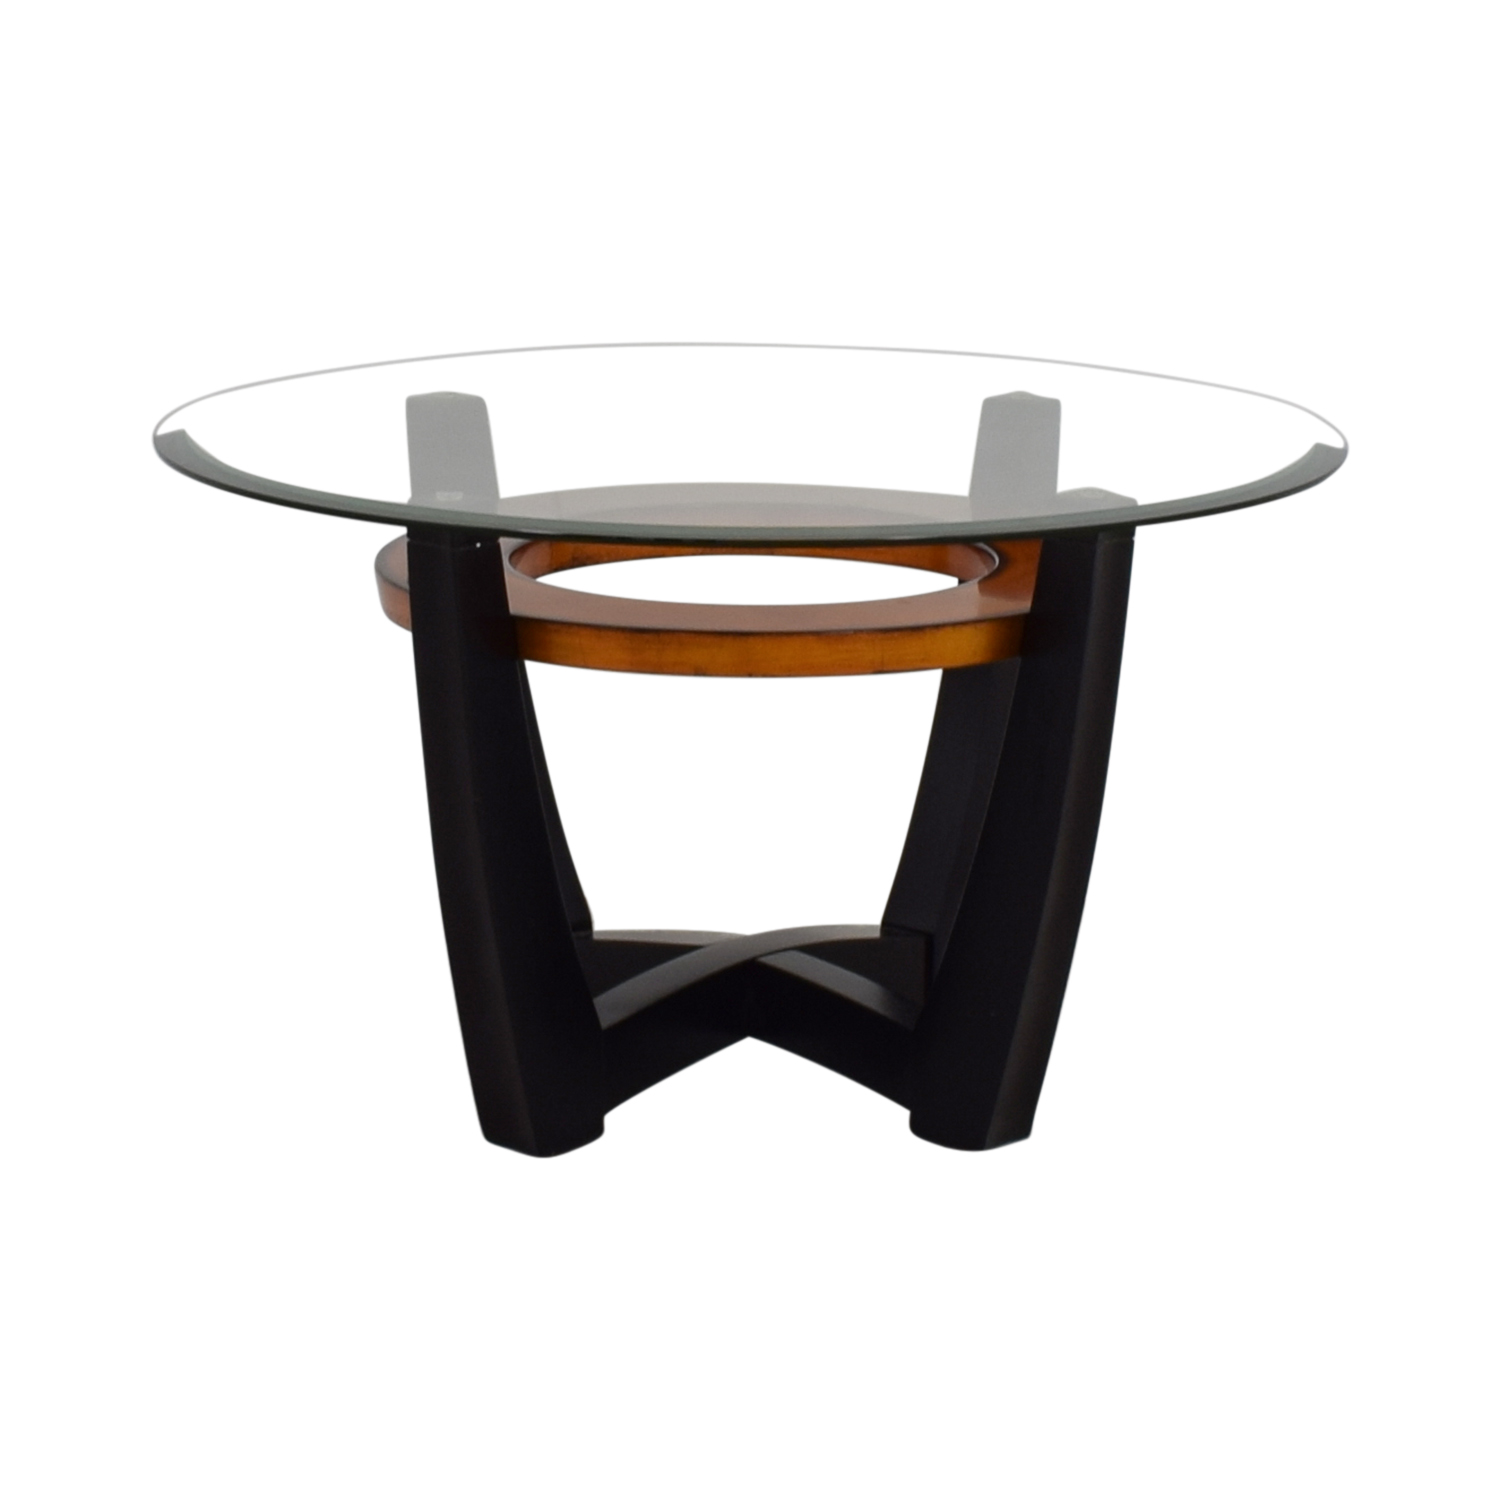 Elation Elation Round Glass & Wood Coffee Table BLACK